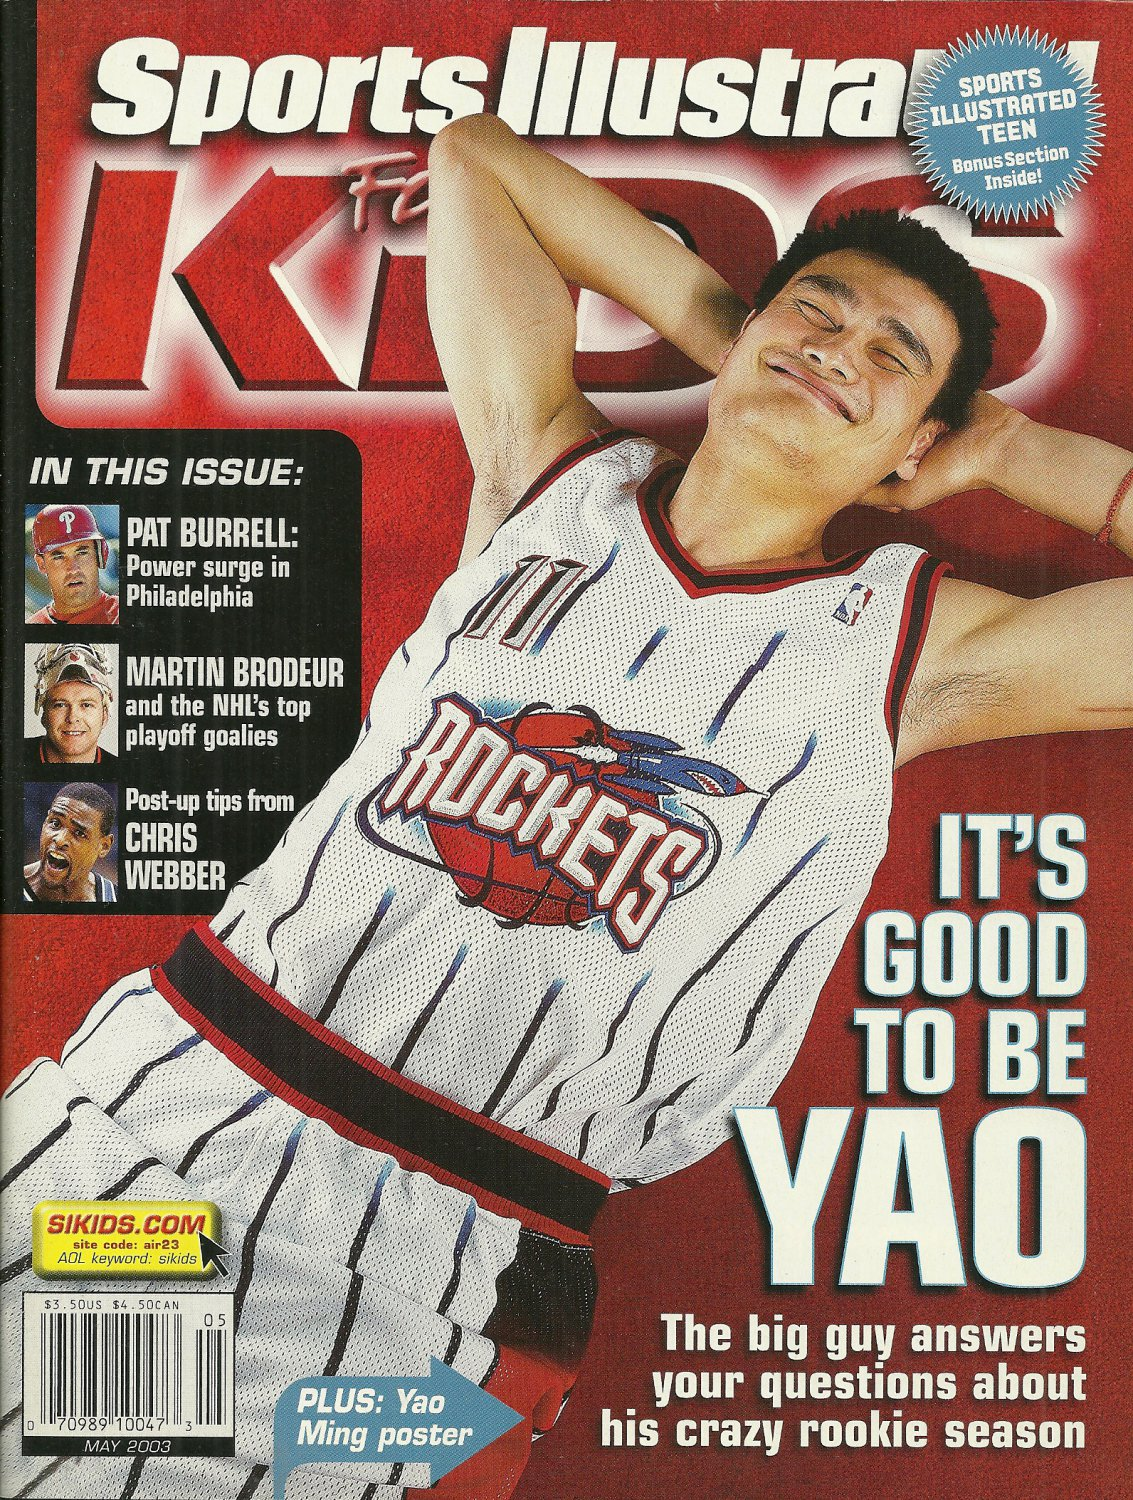 SI SPORTS ILLUSTRATED FOR KIDS MAGAZINE May 2003 w/ Cards & Yao Ming Poster NEW!